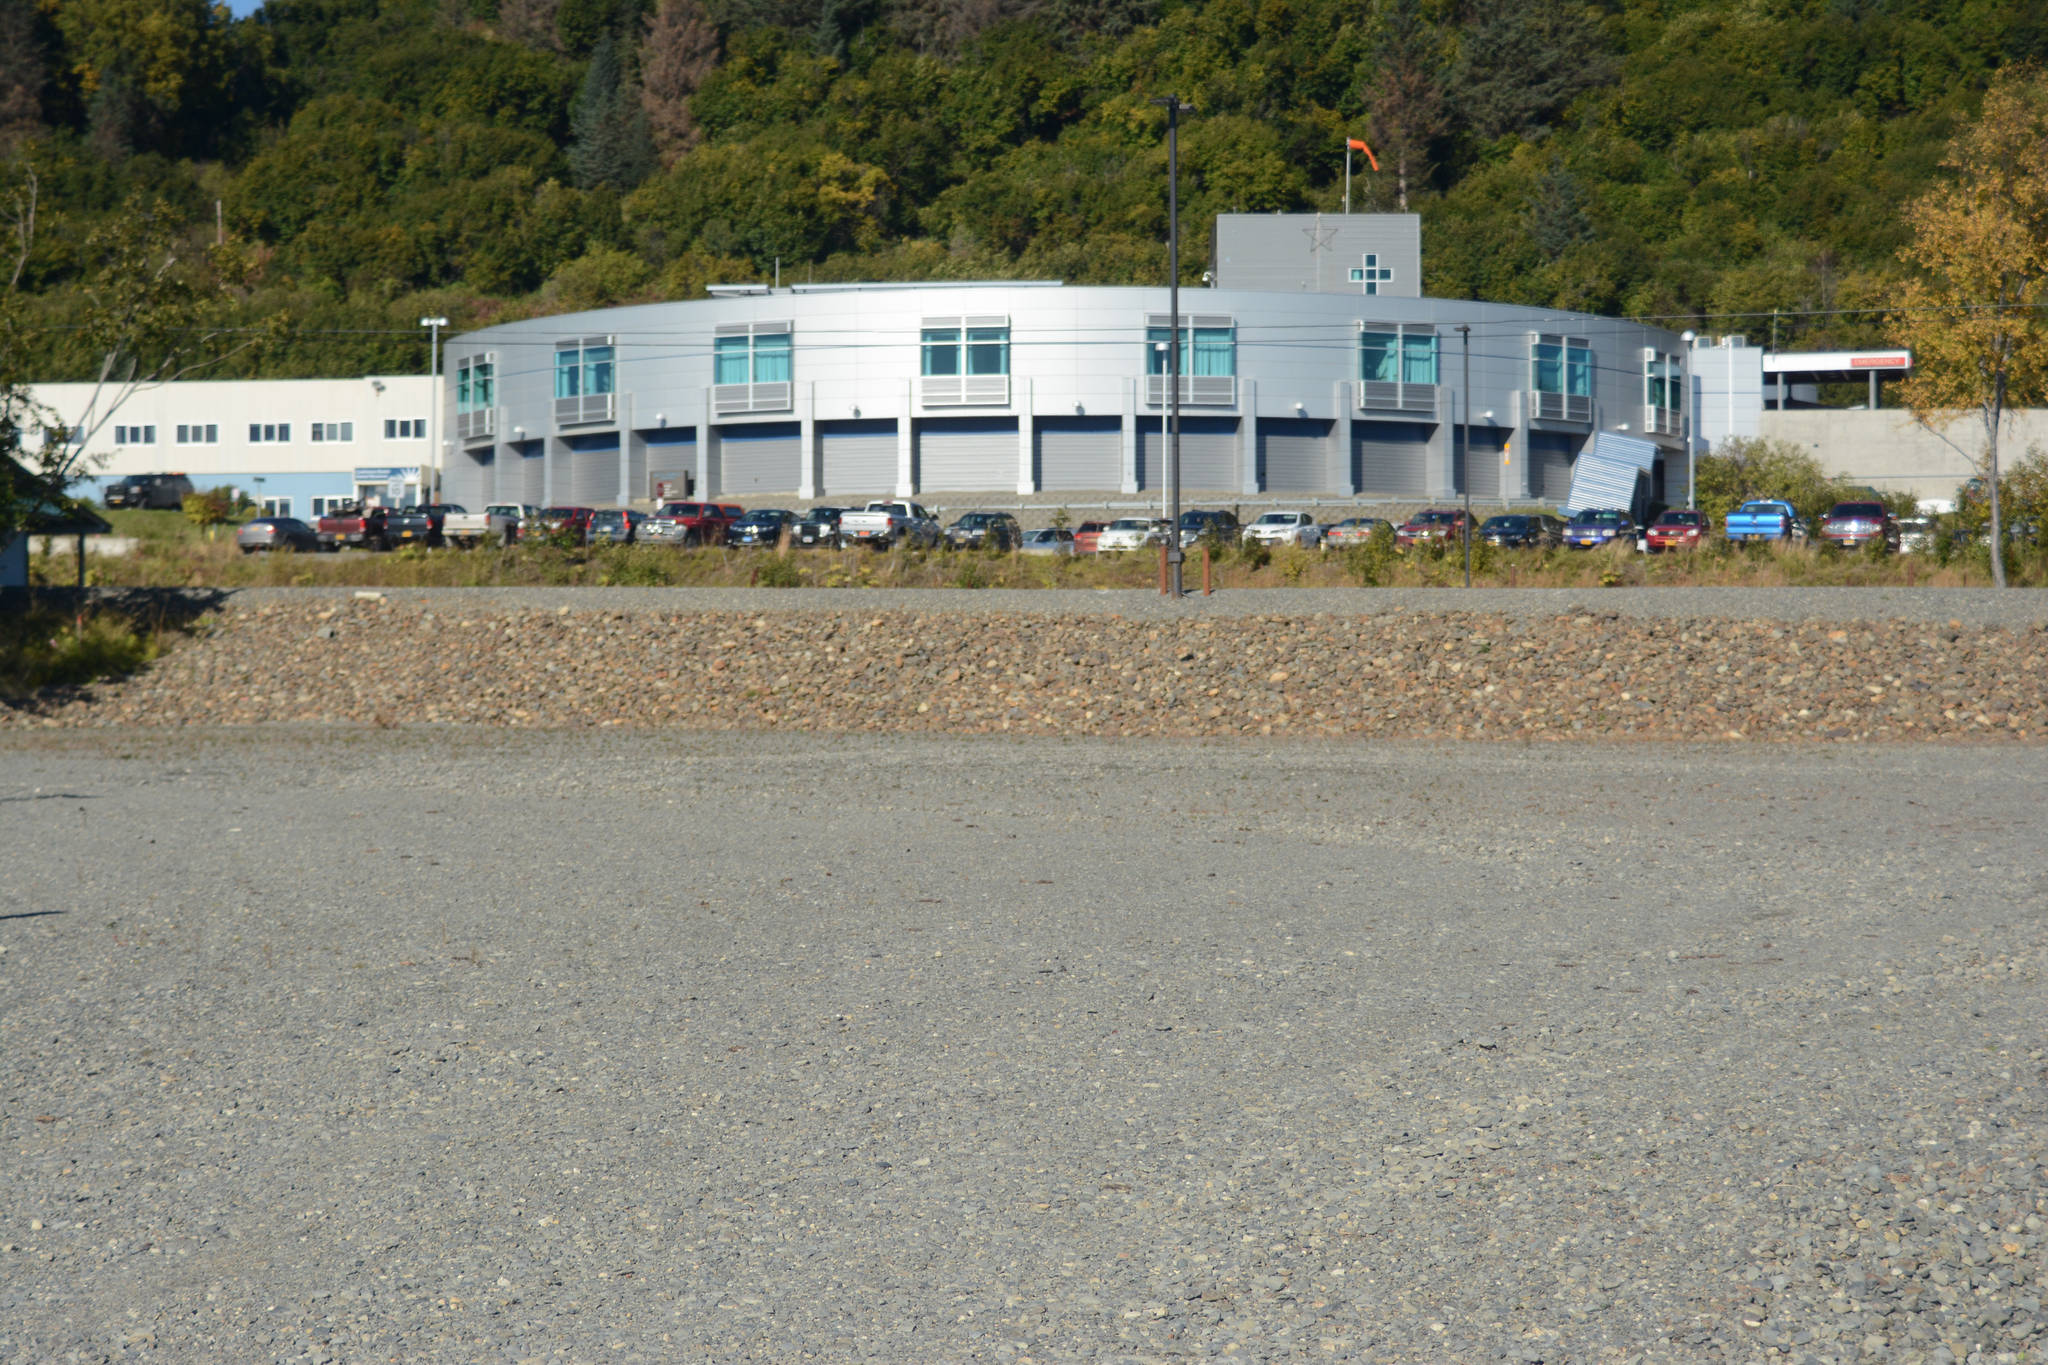 Dr. Paul Raymond's proposed 20,000-square-foot medical building would go on this empty lot between Homer Medical Clinic and South Peninsula Hospital, as seen on Sept. 25, 2018, in Homer, Alaska. The Homer Advisory Planning Commission at its Sept. 19 meeting approved a Conditional Use Permit for the building. (Photo by Michael Armstrong/Homer News)